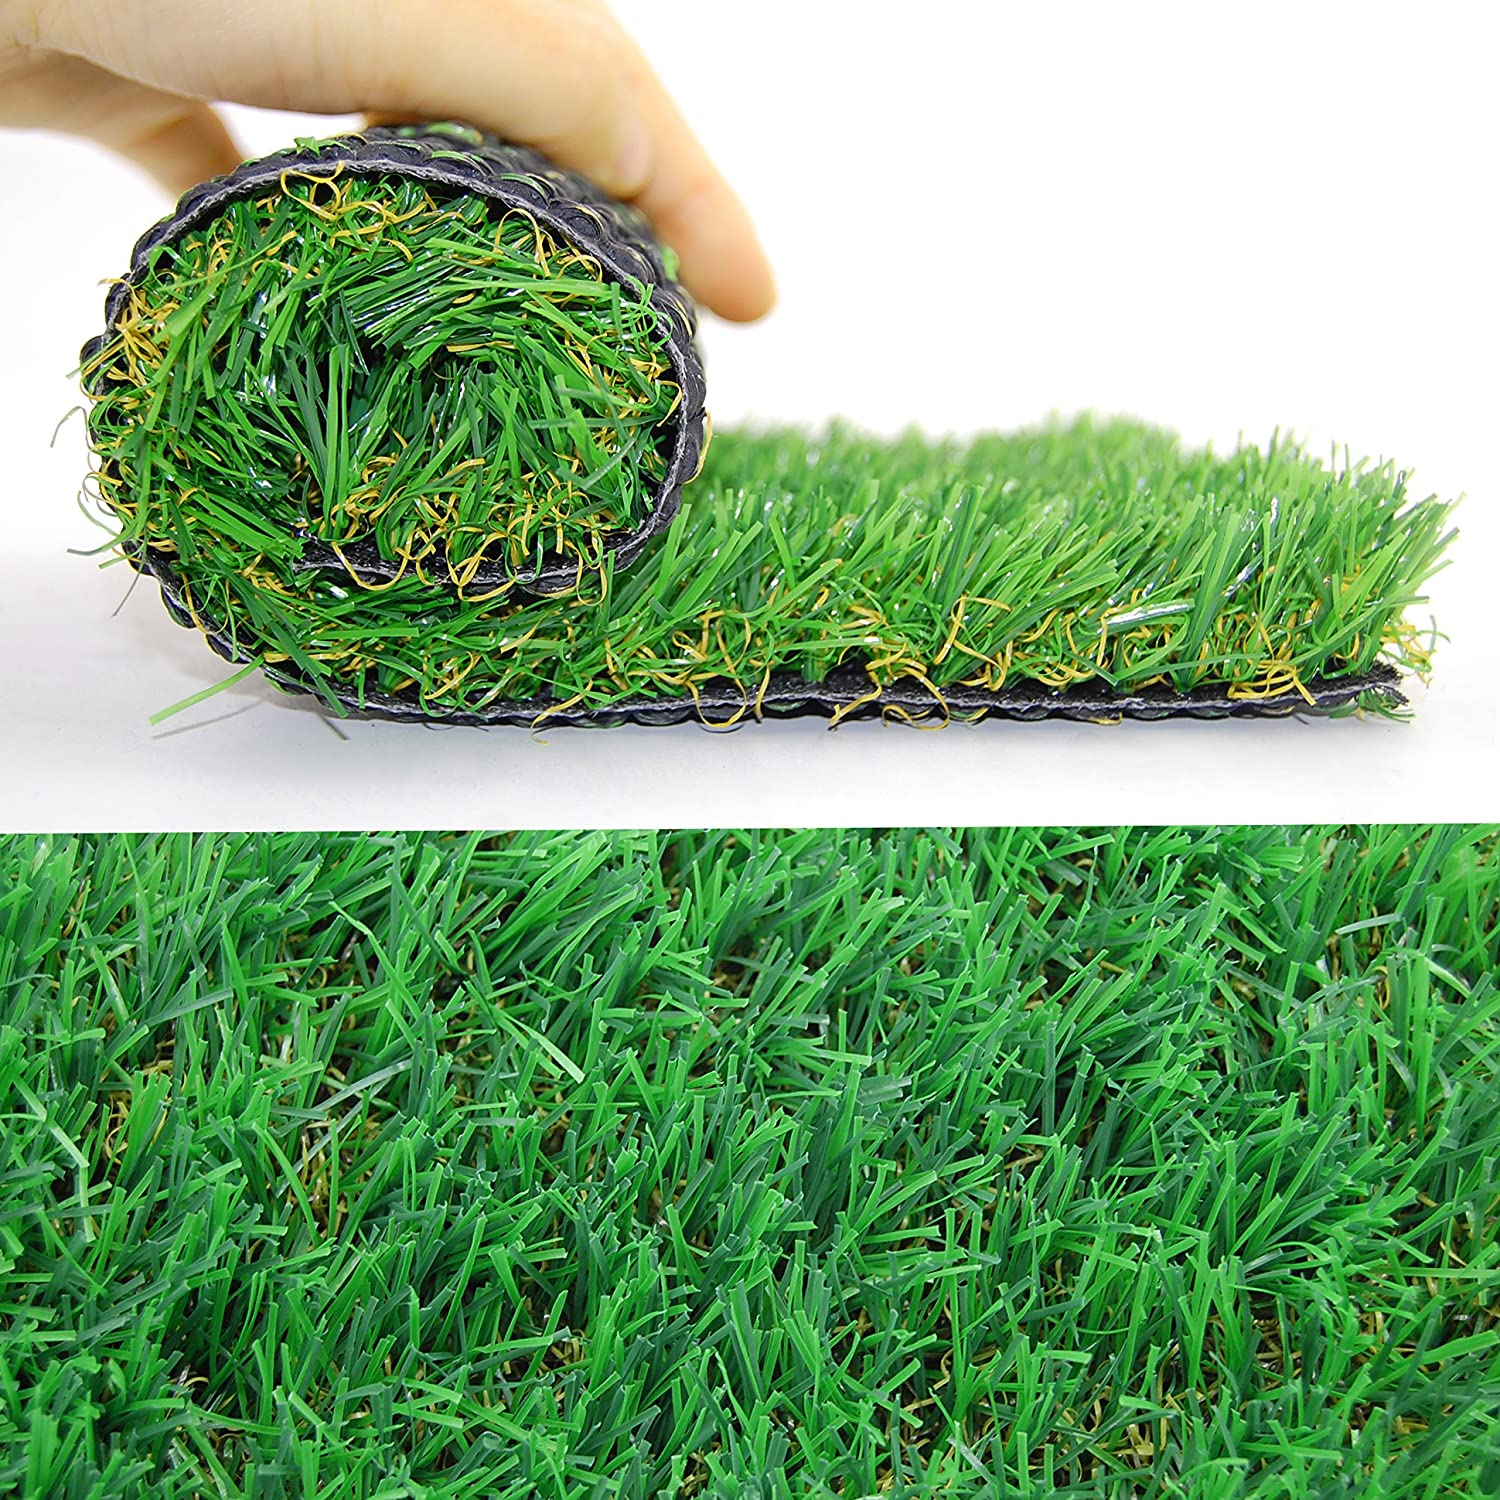 Shaddock Fishing Artificial Grass Turf Lawn Fake Grass Thick Synthetic Turf Carpet Indoor Outdoor Landscape Rubber Backed With Drainage Holes,1.77inch Blade Height by Shaddock Fishing